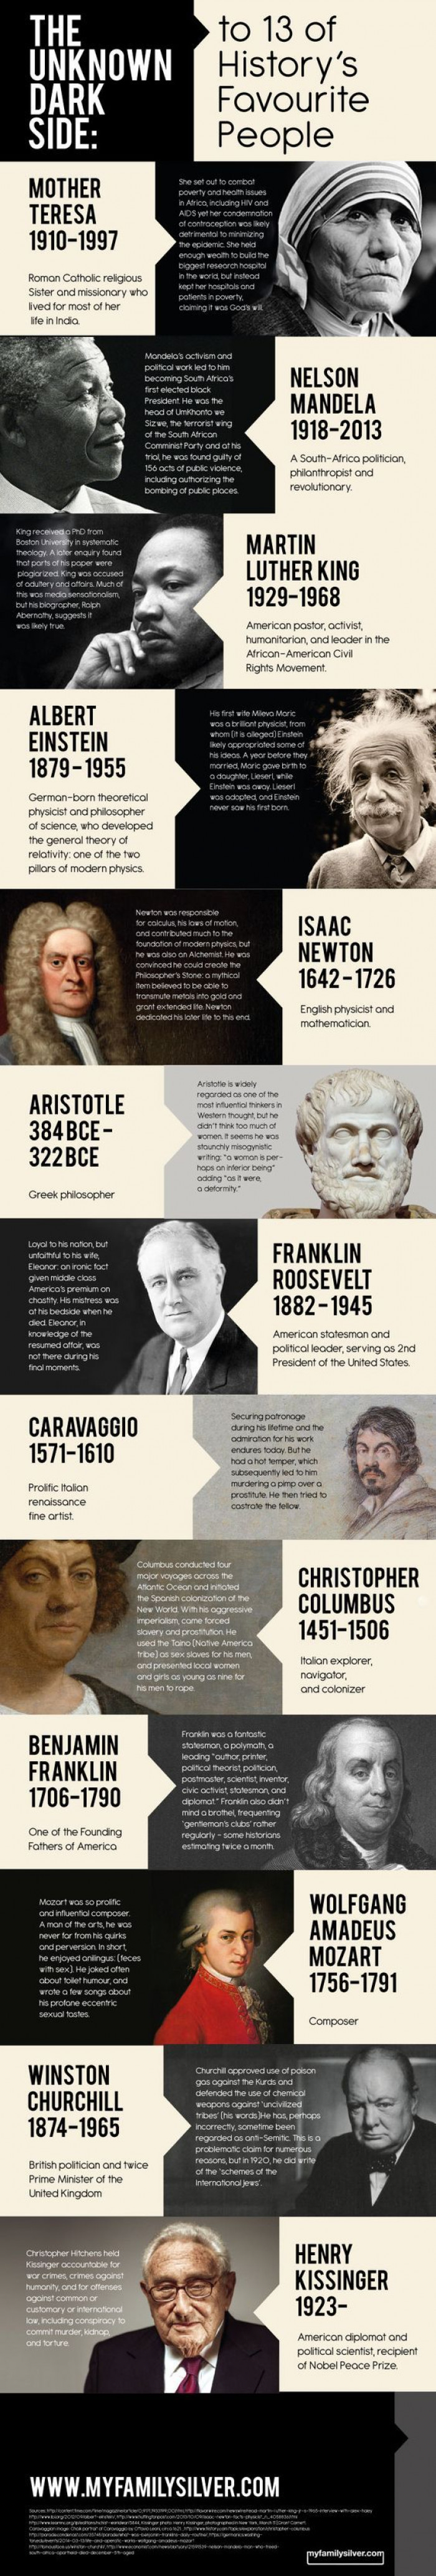 The Unknown Dark Side to 13 of History's Favorite People